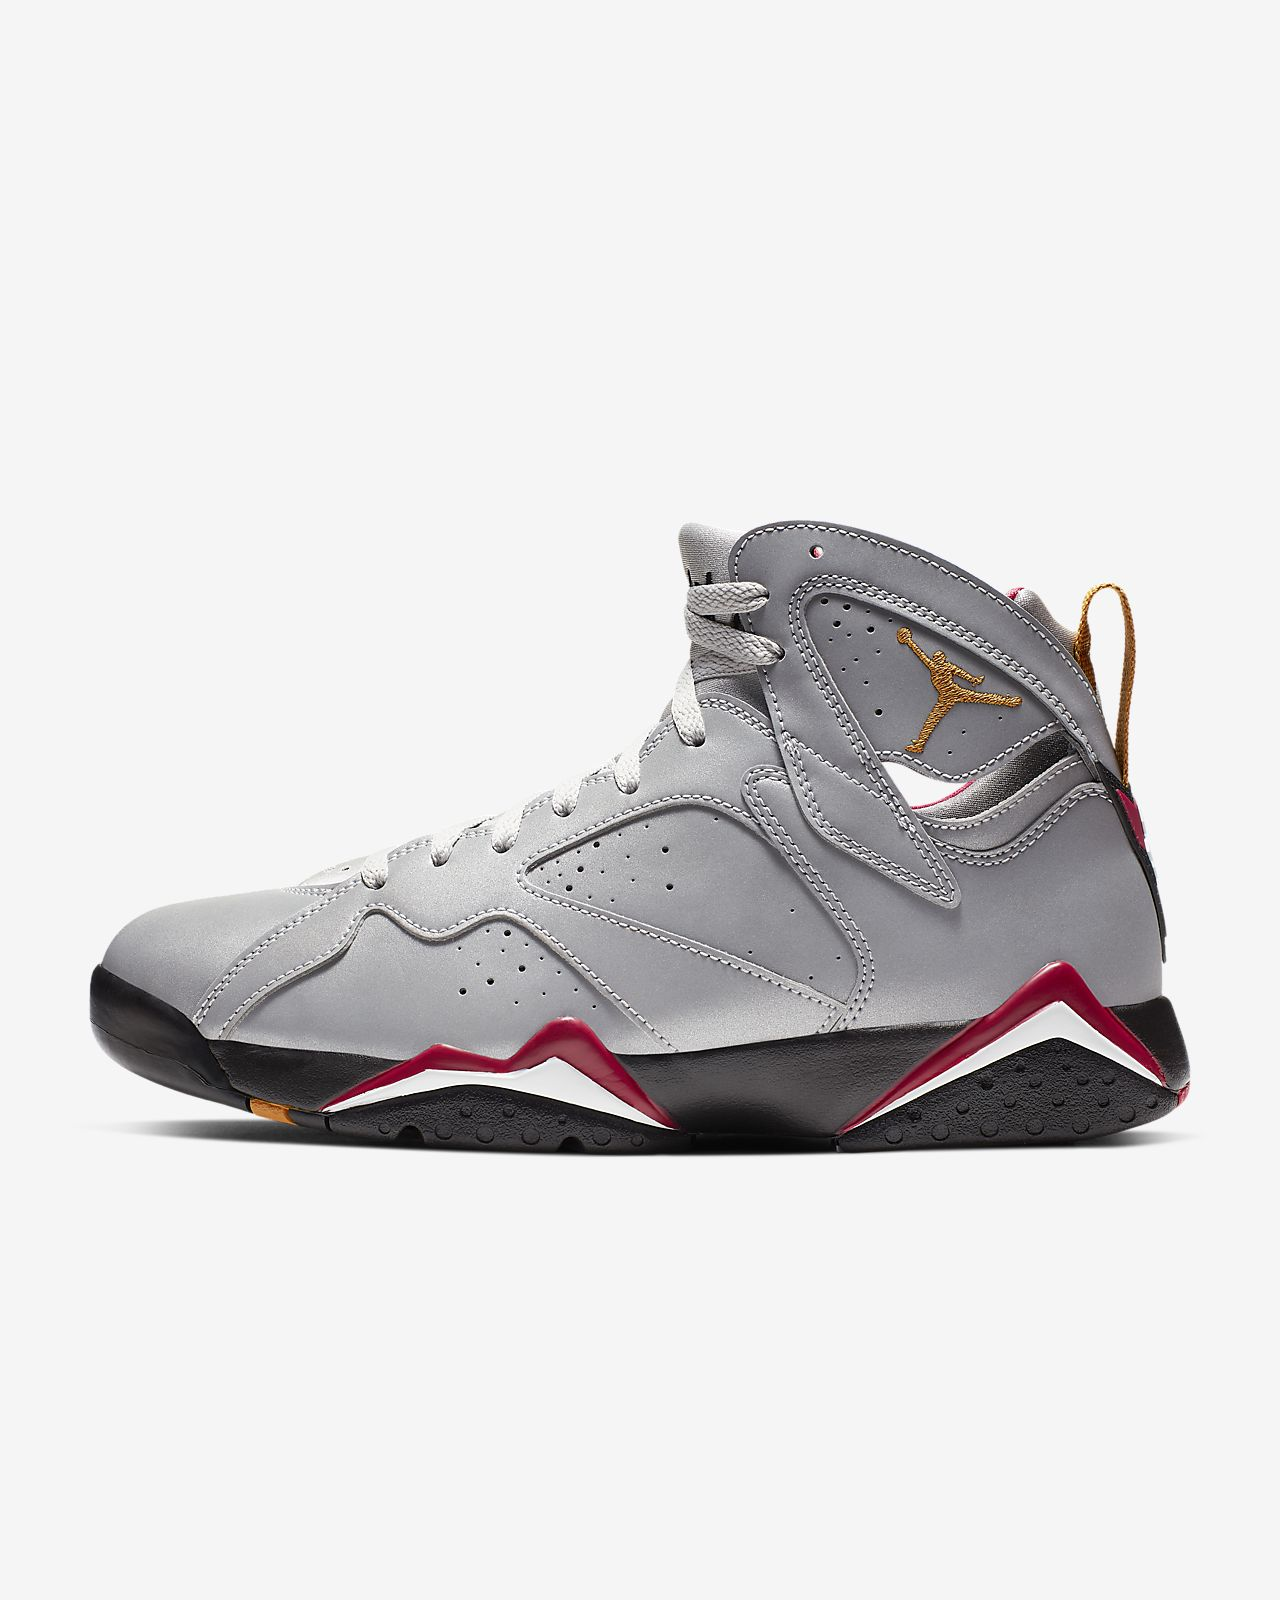 best service 0608a 1e144 Air Jordan 7 Retro SP Men's Shoe